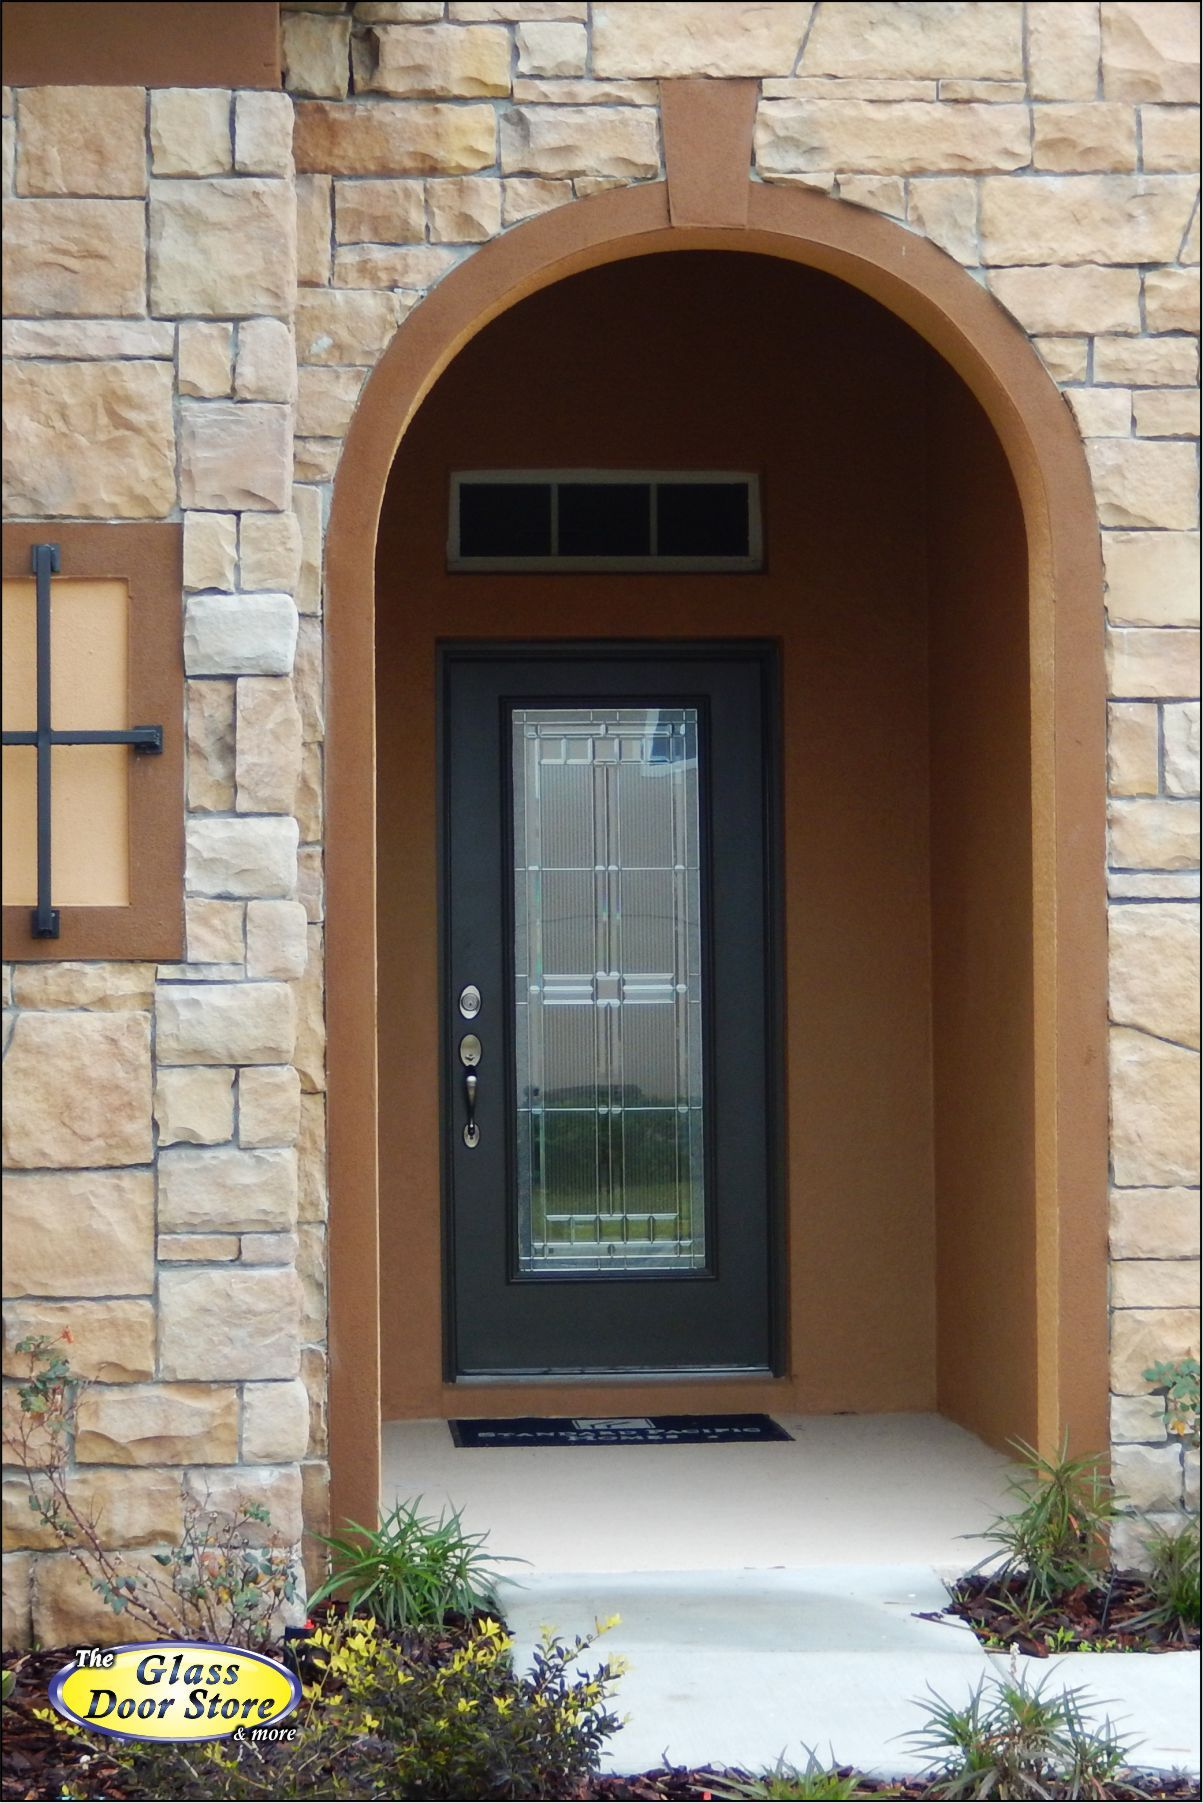 Round top front door window inserts - Single Door Insert With Square Pattern In Front Entry With Arched Opening